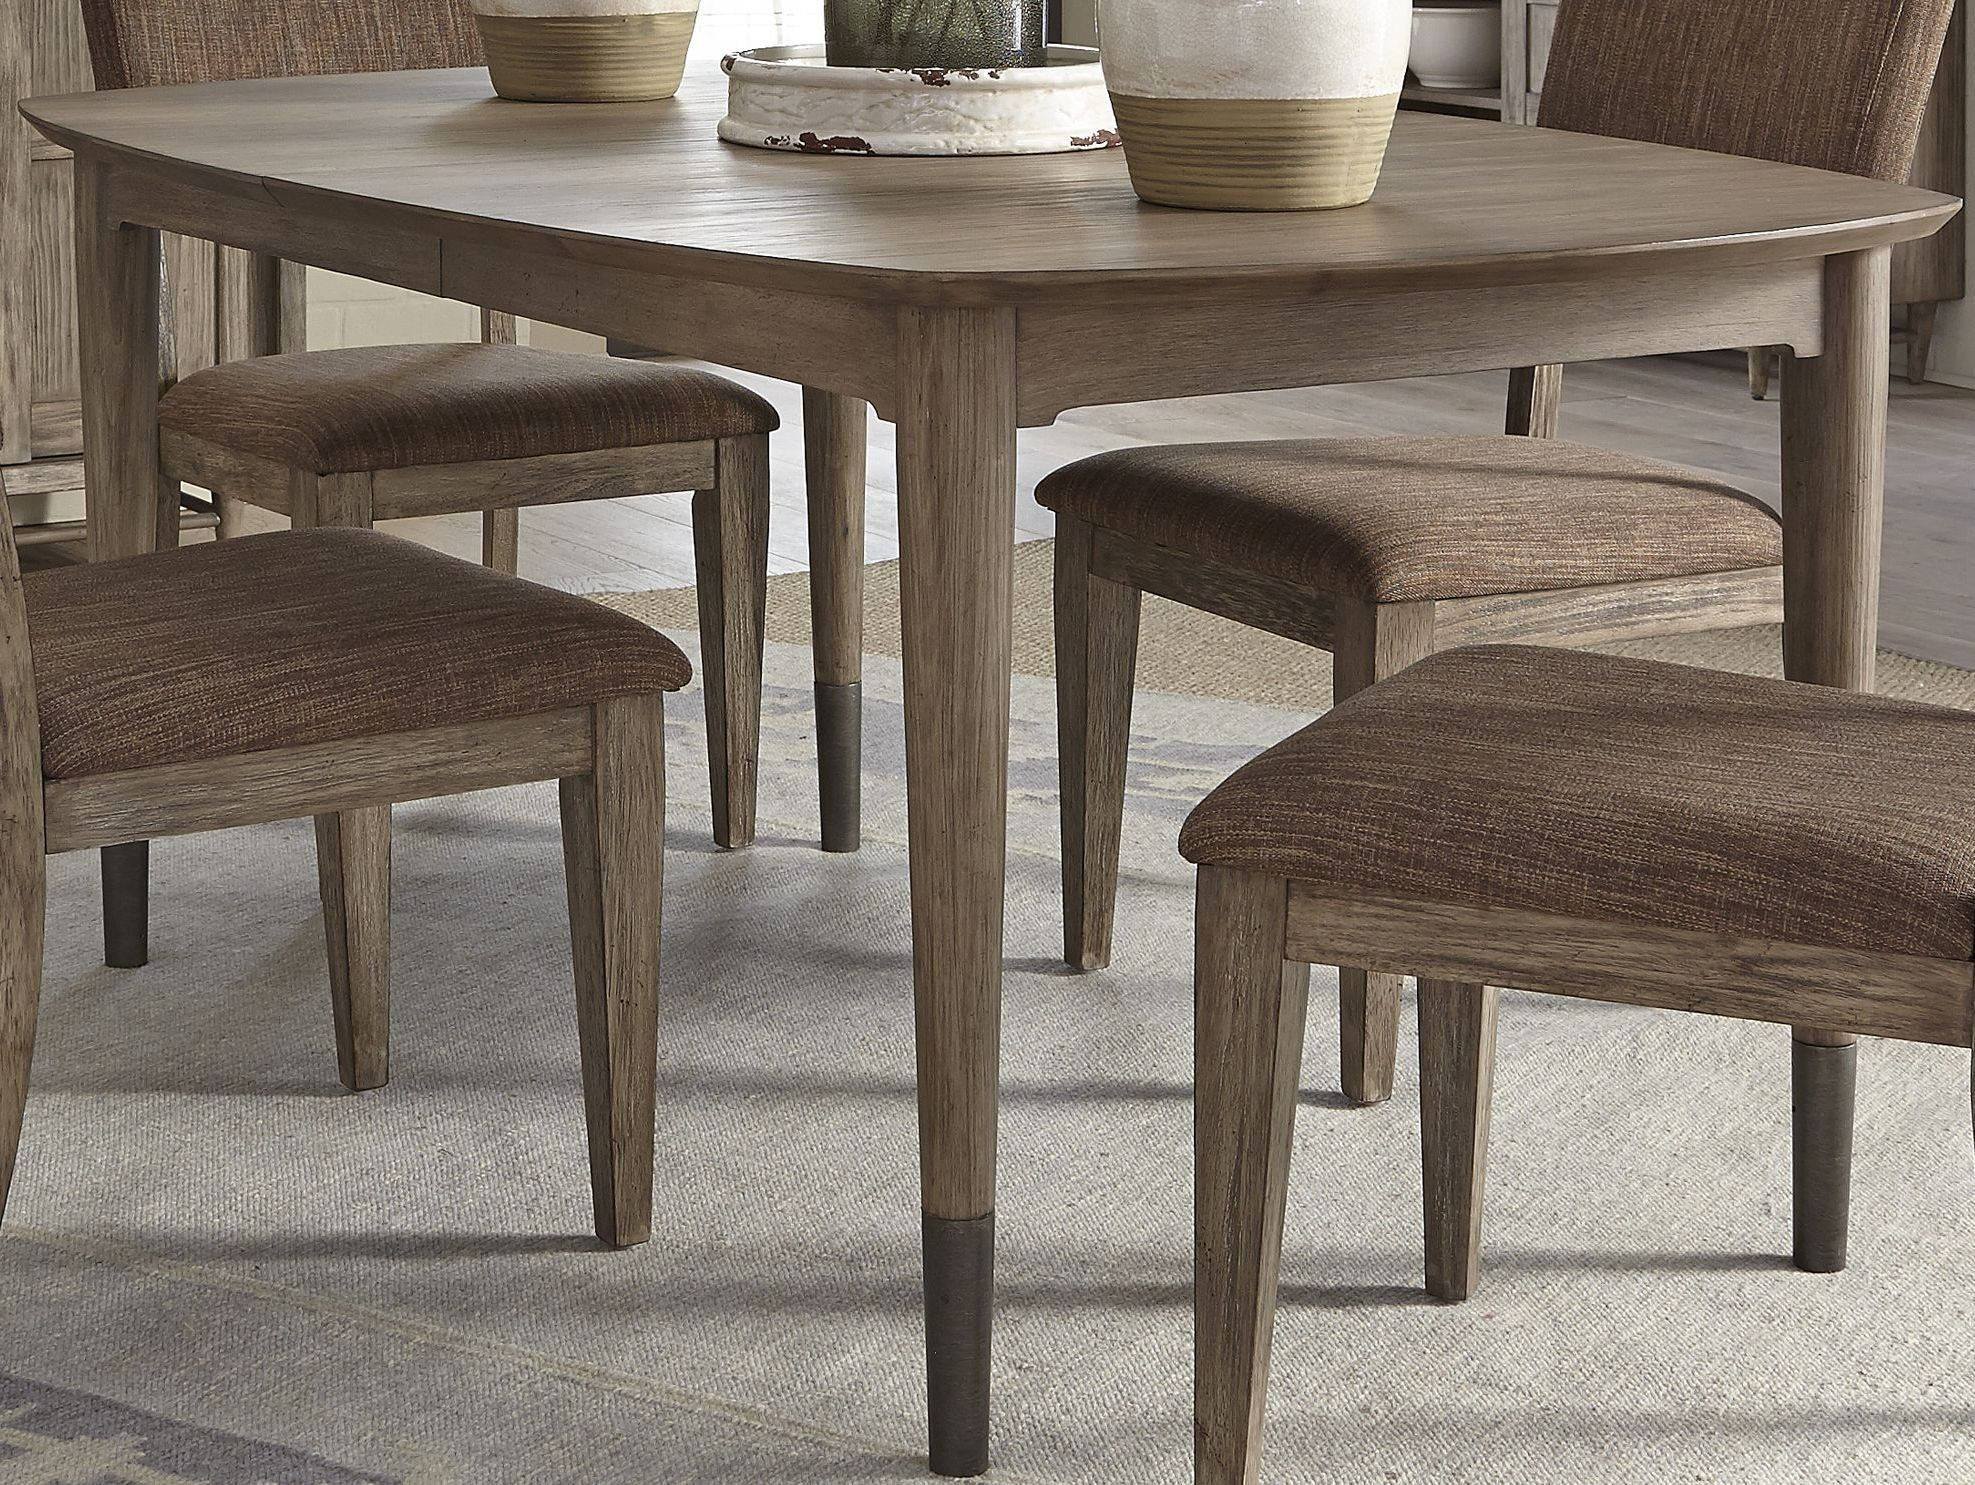 Miramar brown oval leg dining table from liberty coleman for One leg dining table